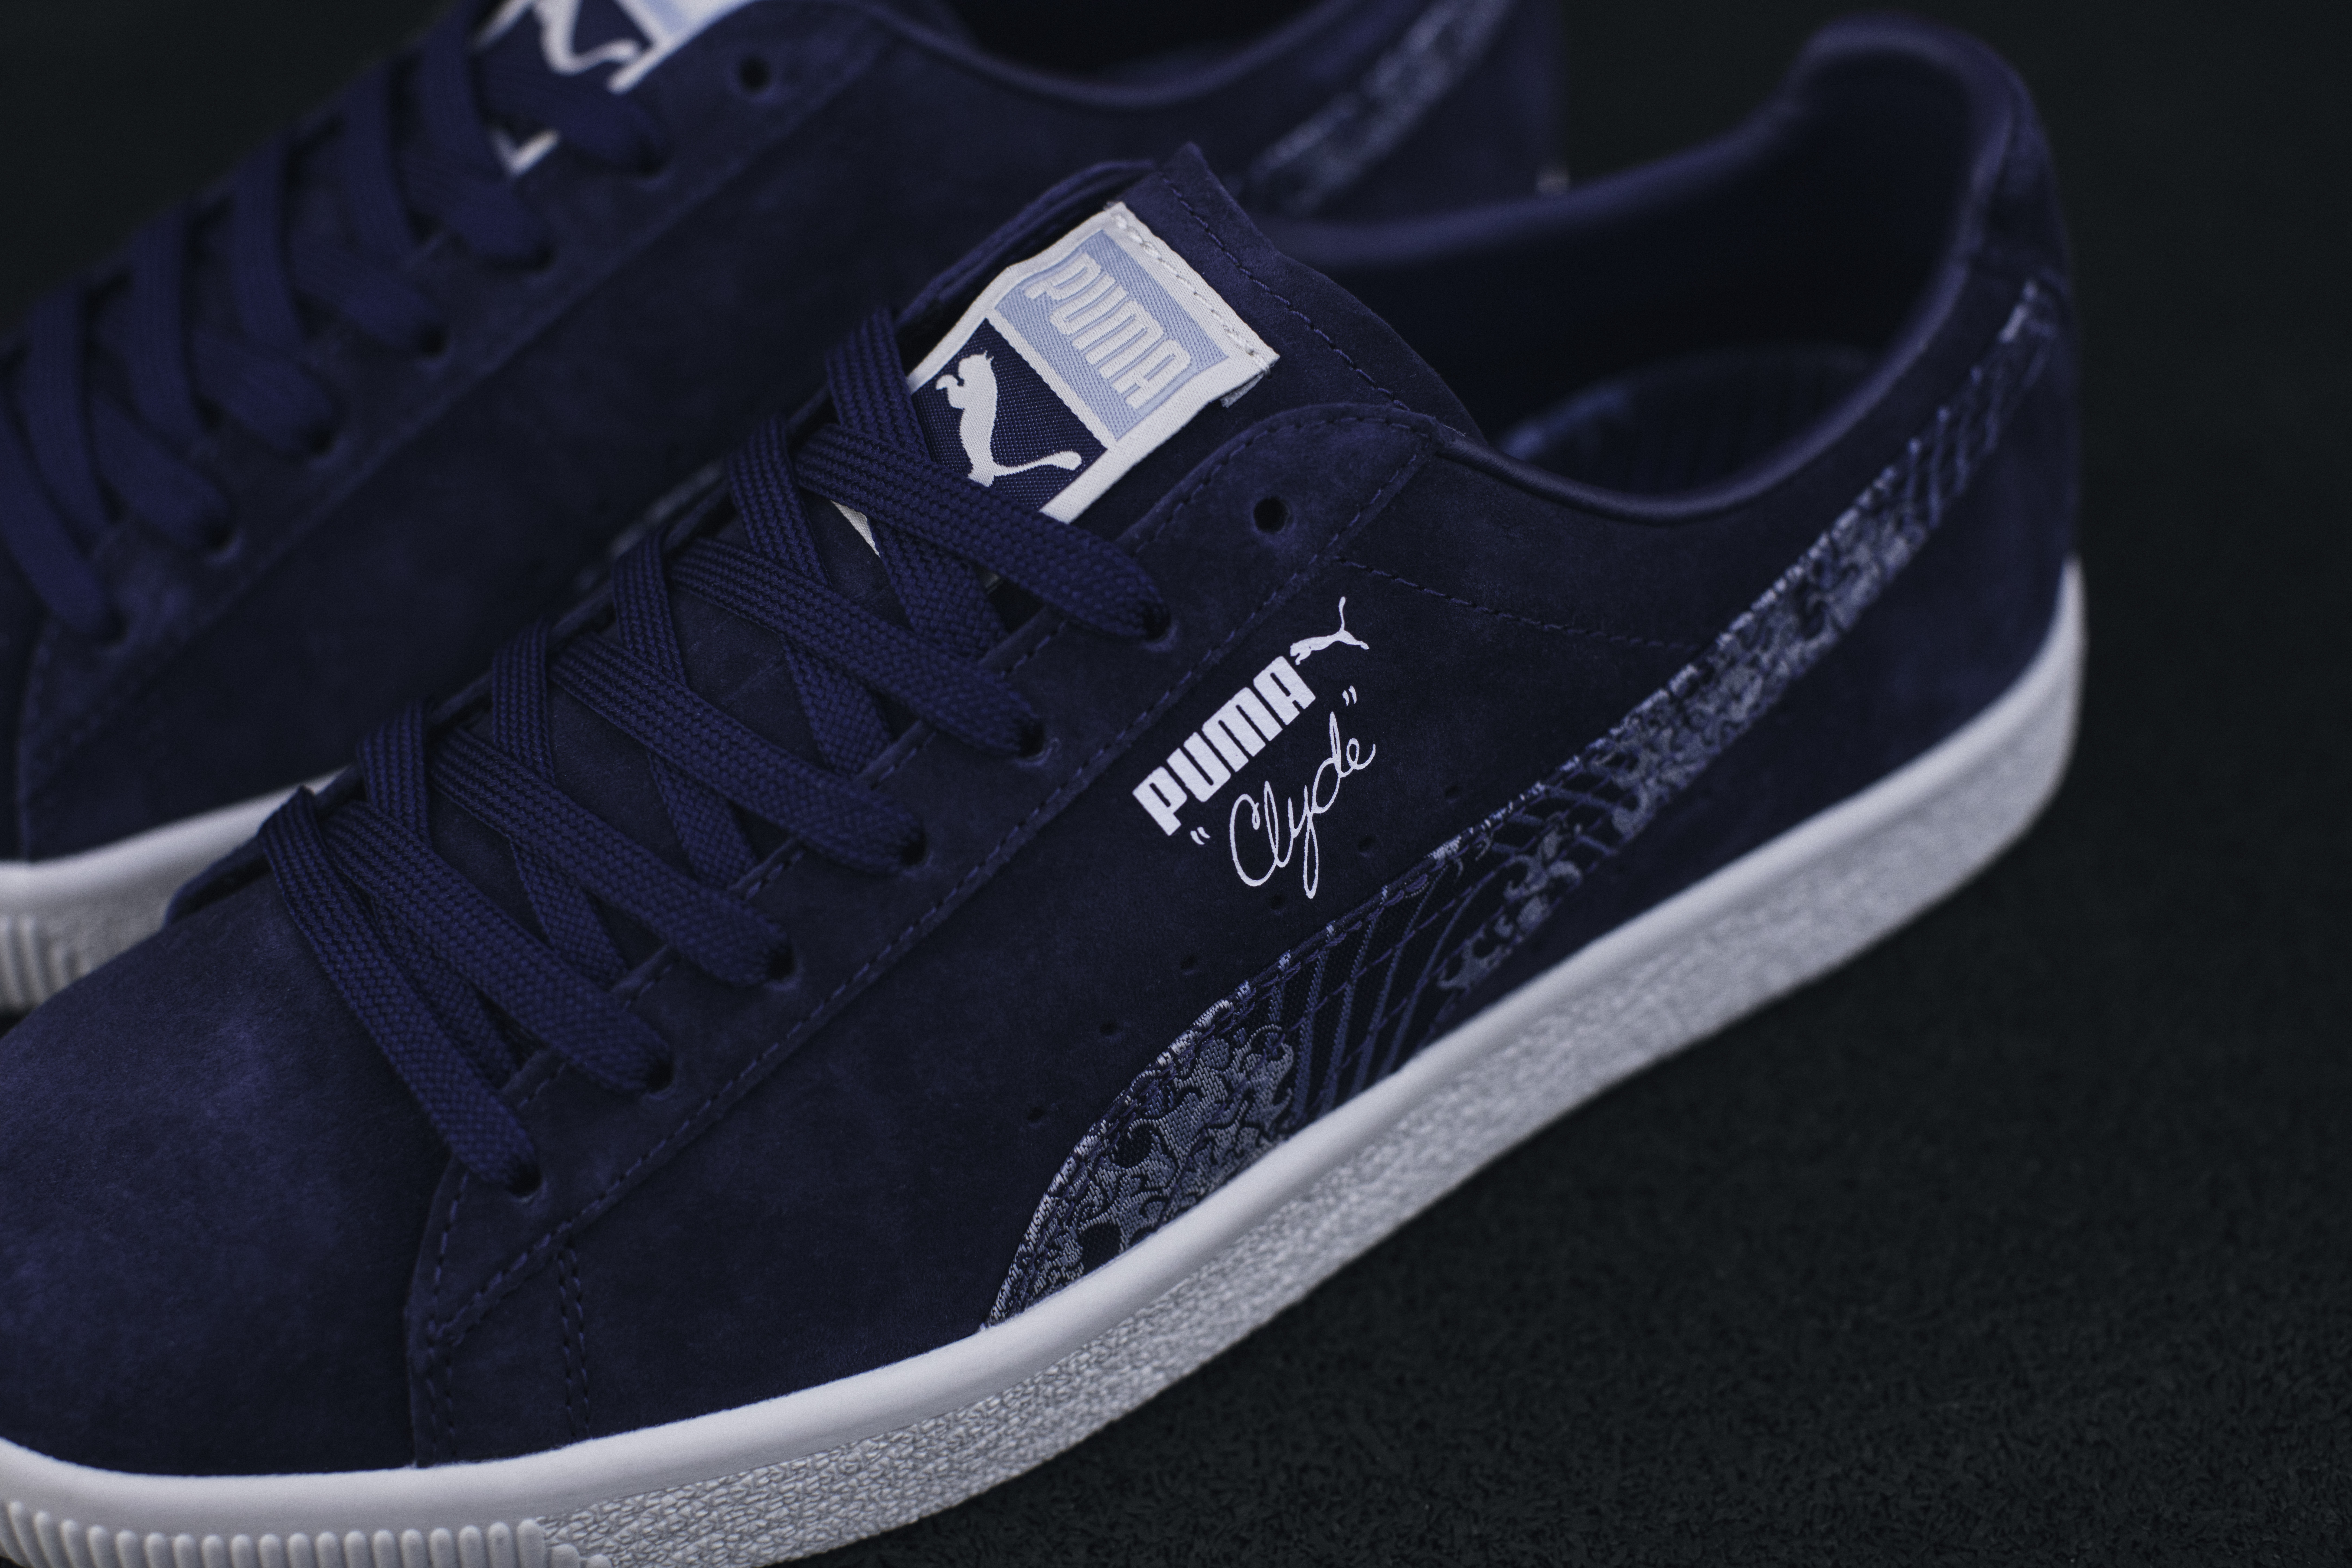 PUMA Makes Waves With Japanese Ukiyo-e Art In Limited Edition Drop